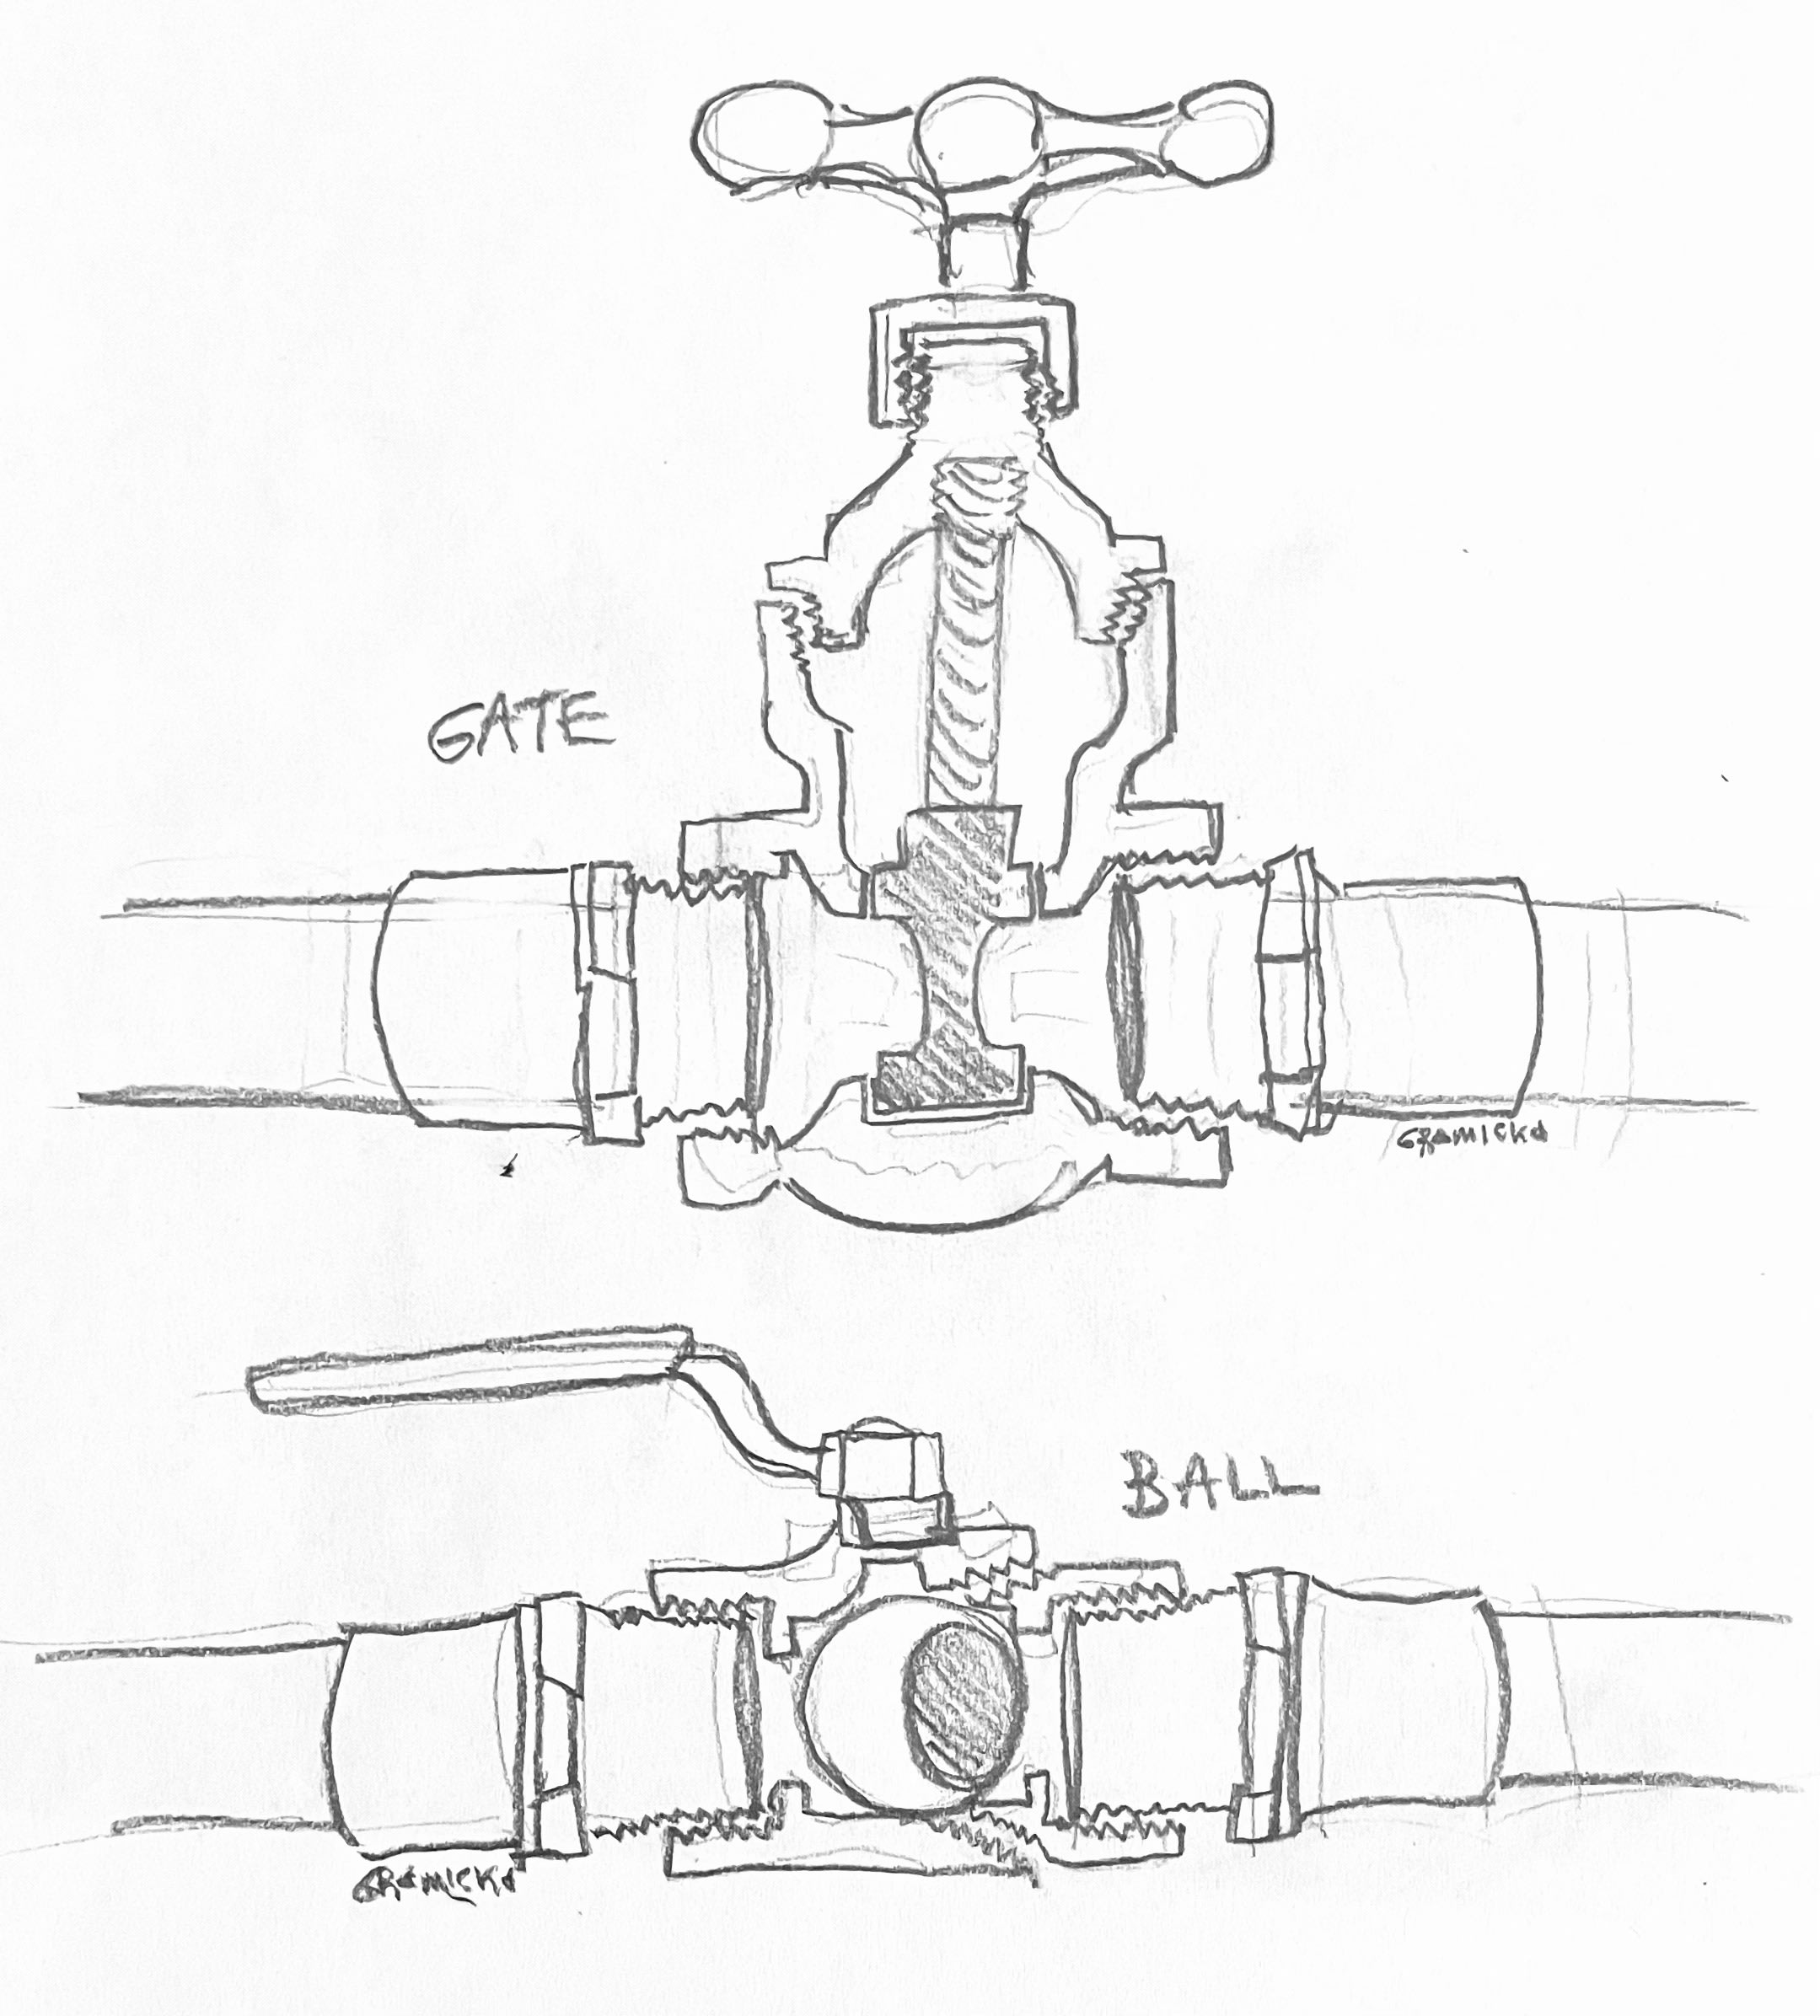 Each house should have an accessible main water shutoff near the entrance of the water service. The main water shutoff valve is the point between the water service pipe and the water distribution system. It must be a full-open valve, usually a gate valve or a ball valve. Inspectors should look for missing, loose, or damaged valve handle (or handwheel). Inspectors should not turn the valve during a home inspection. Inspectors should look for water leaks that may come from the valve stem, packing washer, and packing nut. To check for water leaks at the main water shutoff valve, inspectors could wipe the bottom of the valve body with their hands and look for watermarks on the floor below the valve. The valve should be located so that it can be reached or approached for inspection, observation, maintenance, adjustment, repair, or replacement. Refer to 2021 IRC P2303.9 Valves. According to the InterNACHI® Home Inspection Standards of Practice at www.nachi.org/sop, the home inspector should inspect the main water supply shutoff valve, describe its location, and report as in need of correction any water leaks observed during the inspection.